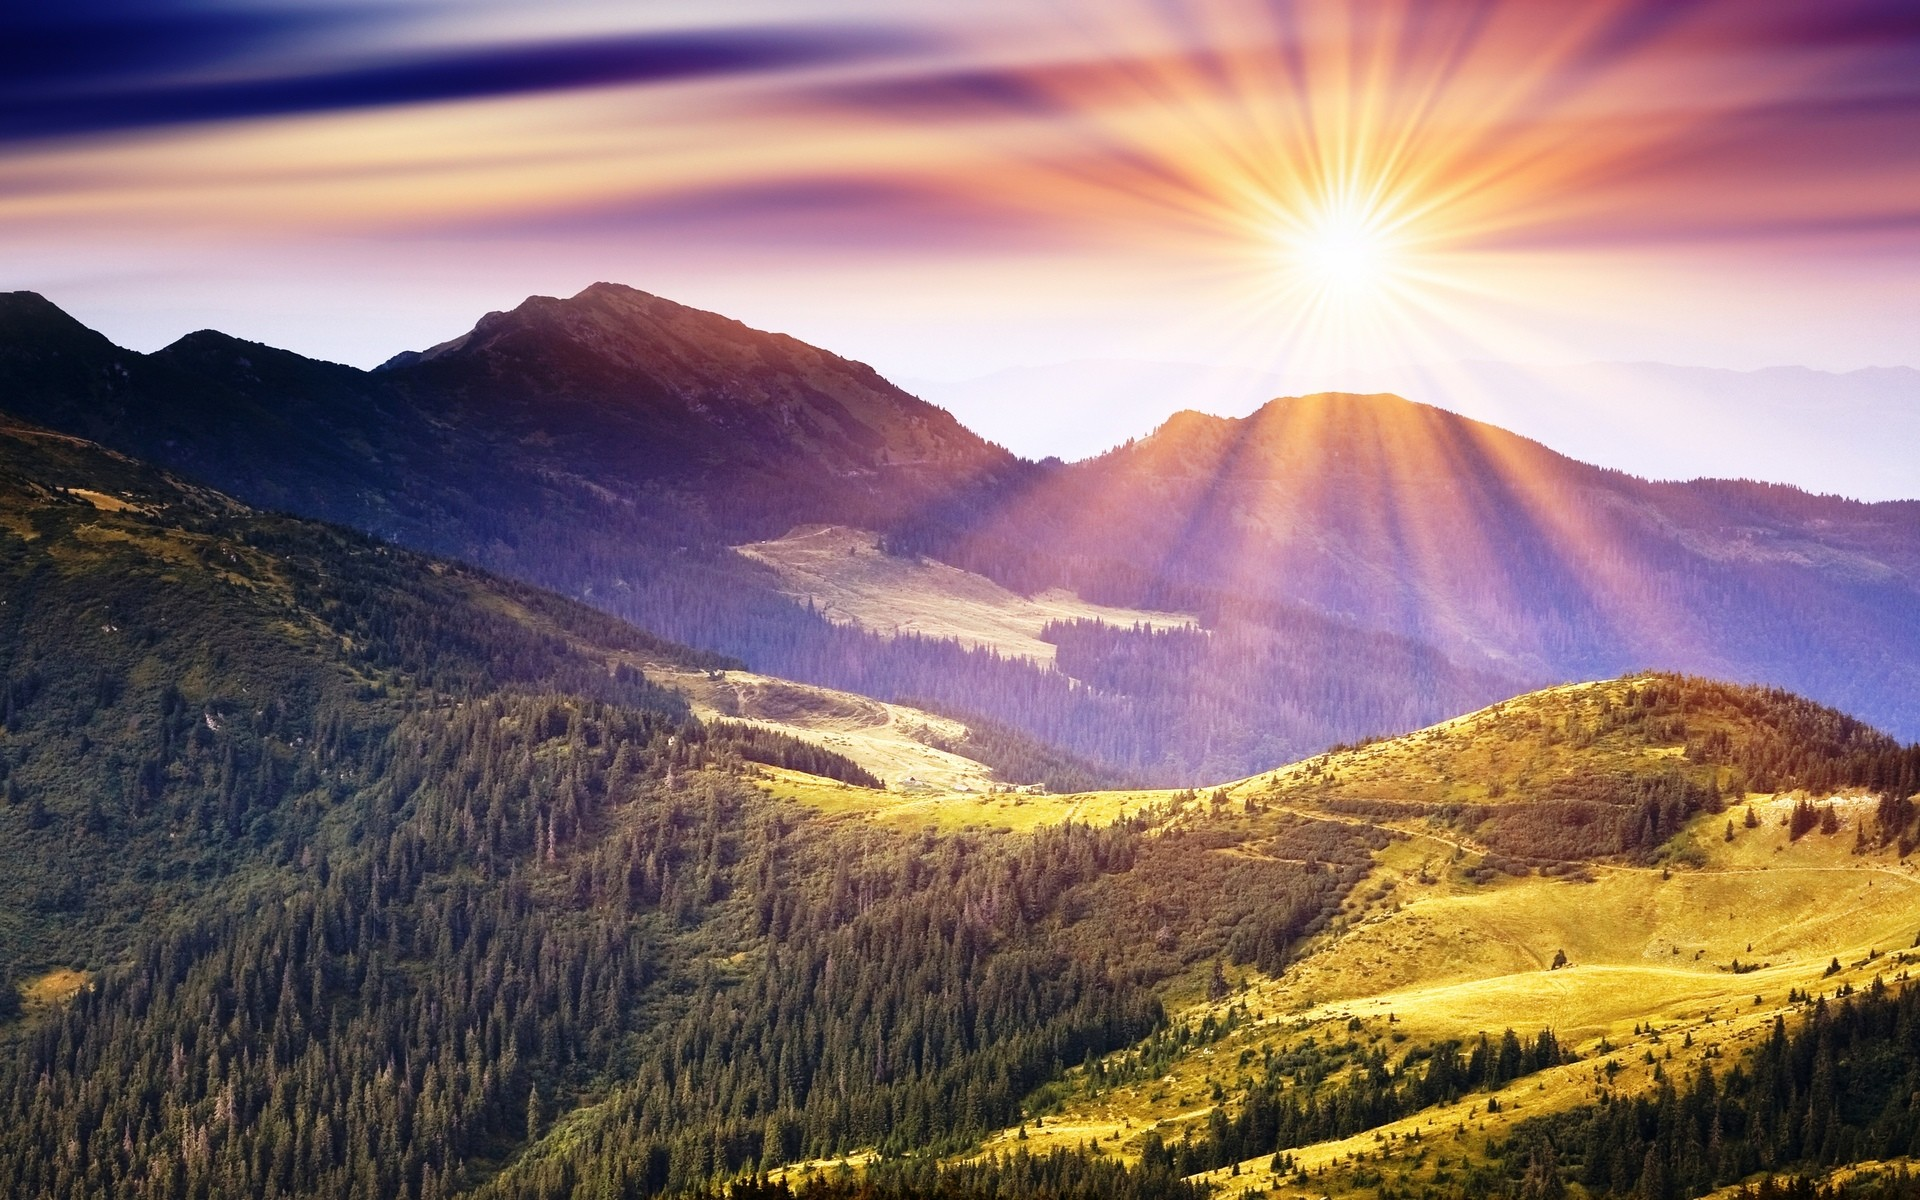 Beauty Sunrise in Mountain for Wallpapers